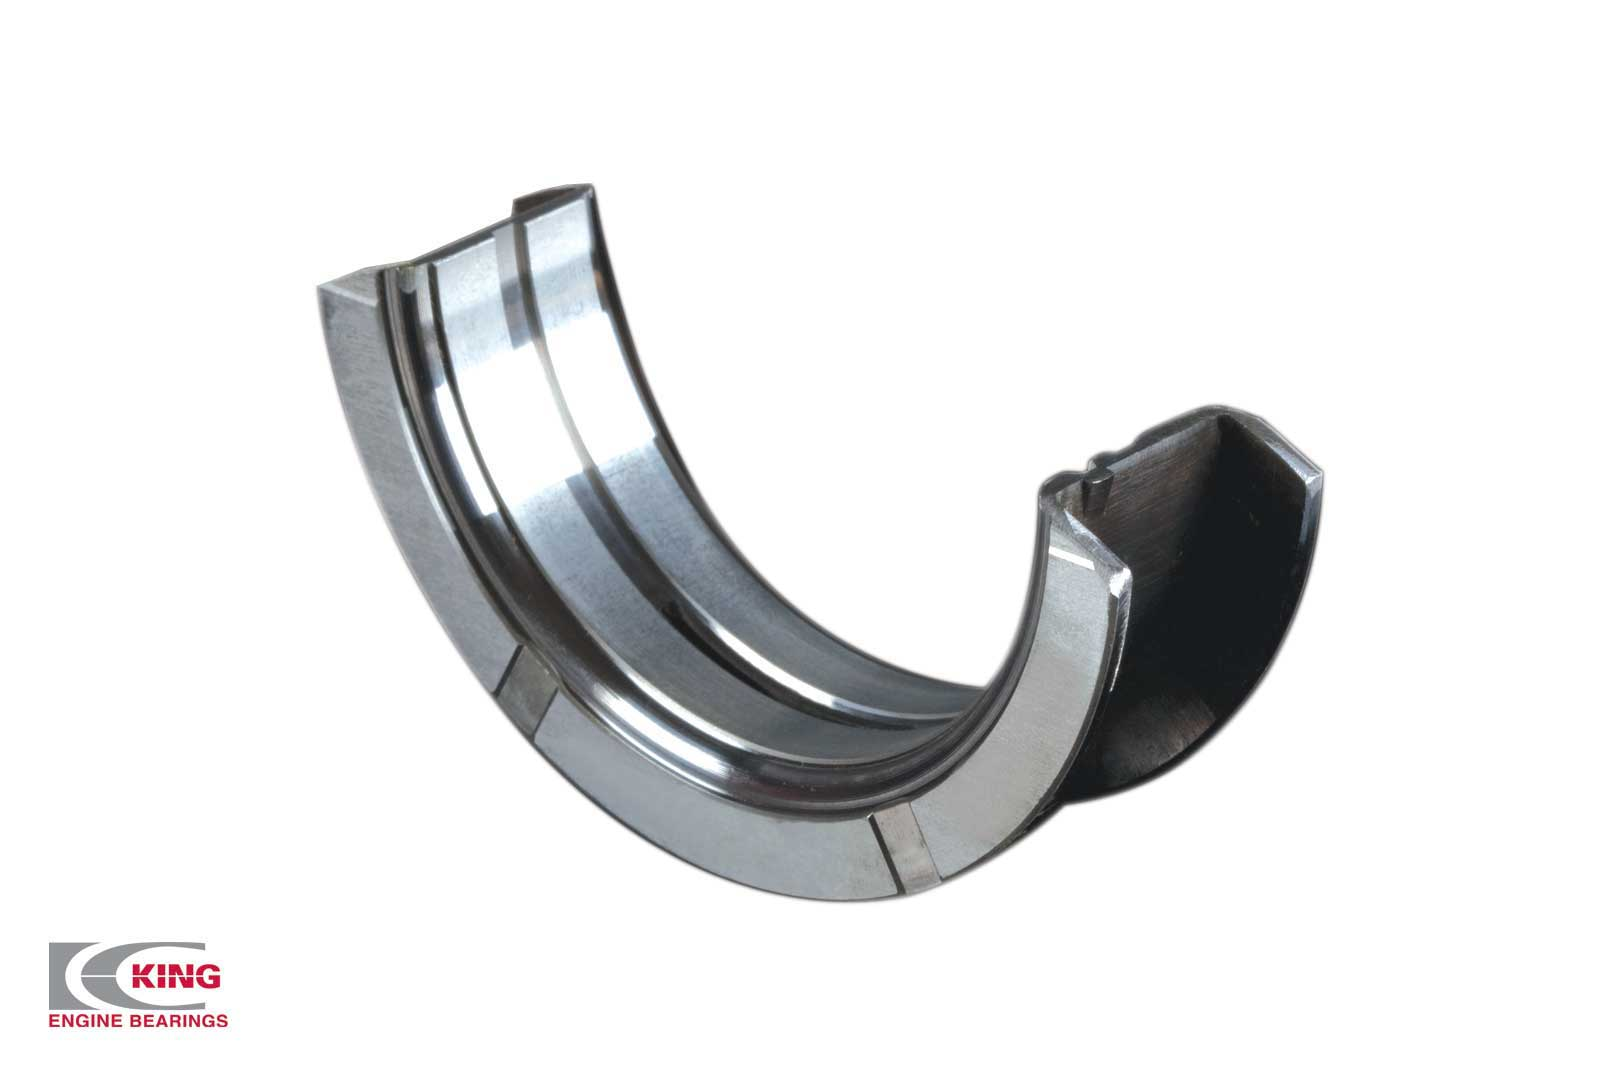 King Engine Bearings - HP Chevy Applications